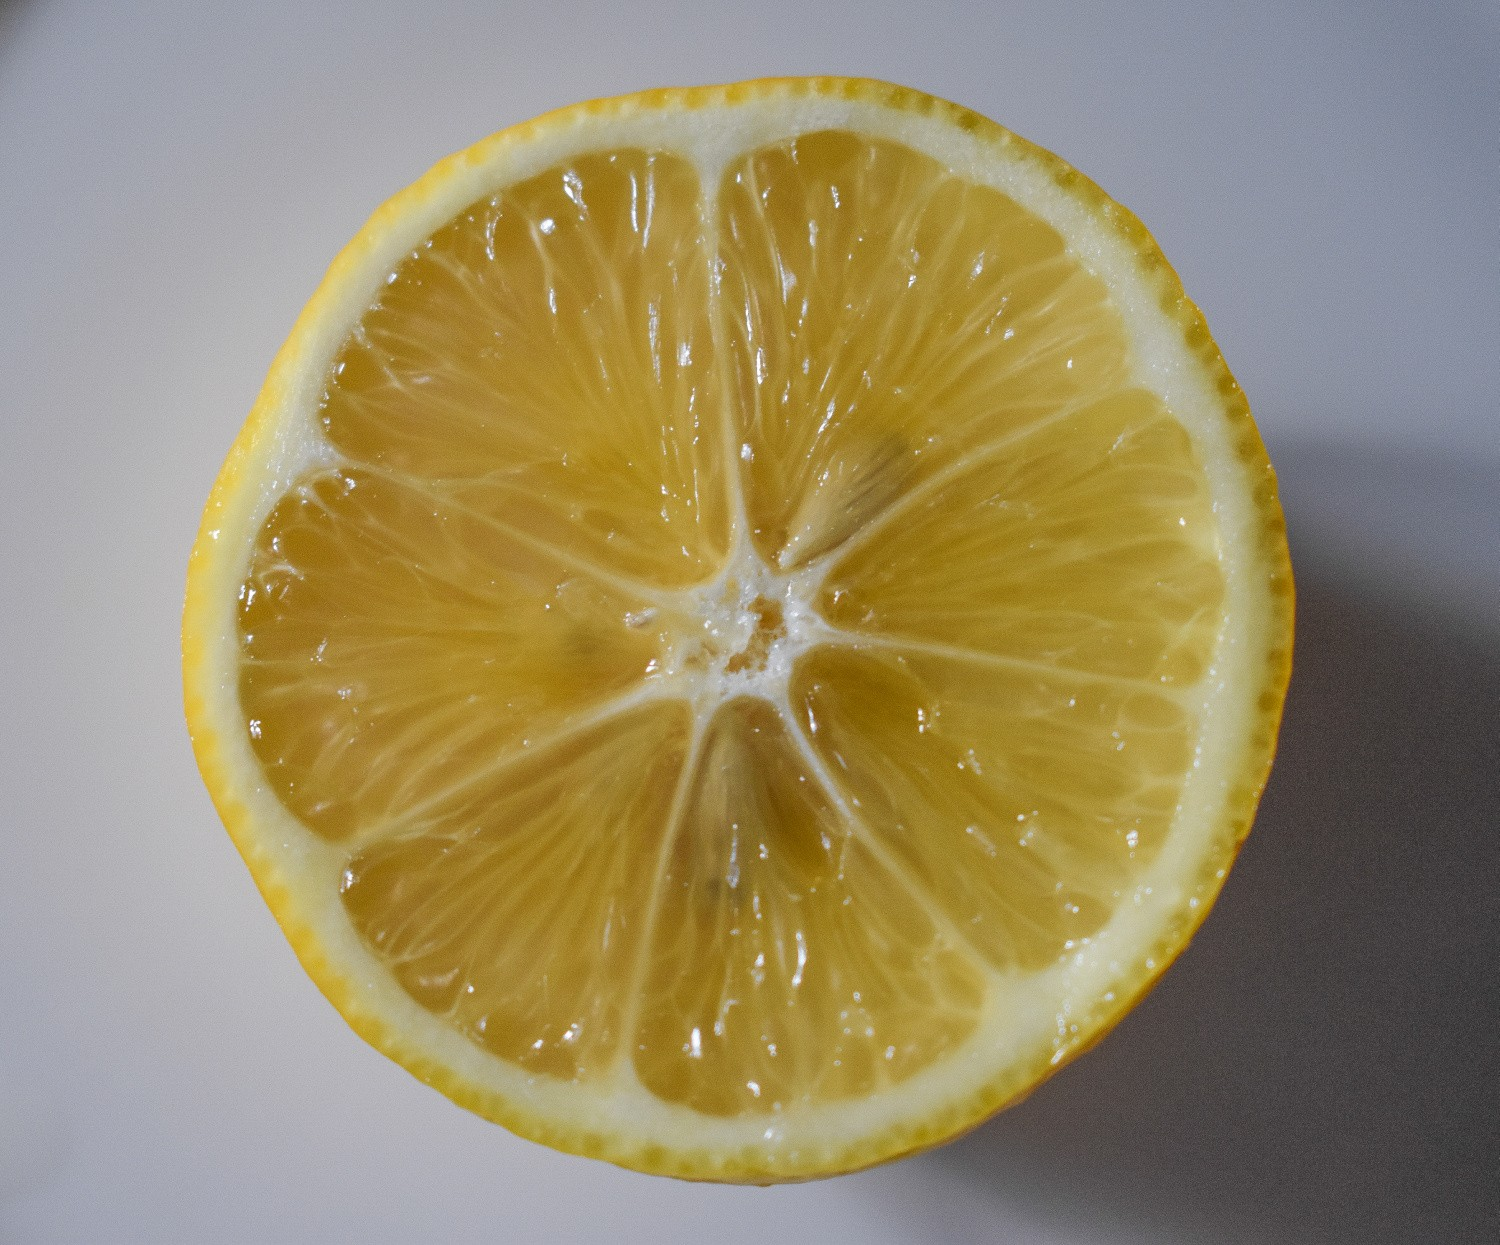 sliced_lemon_on_white_surface-scopio-62775def-c589-4cf1-ab1a-d8b24f9ab5a9